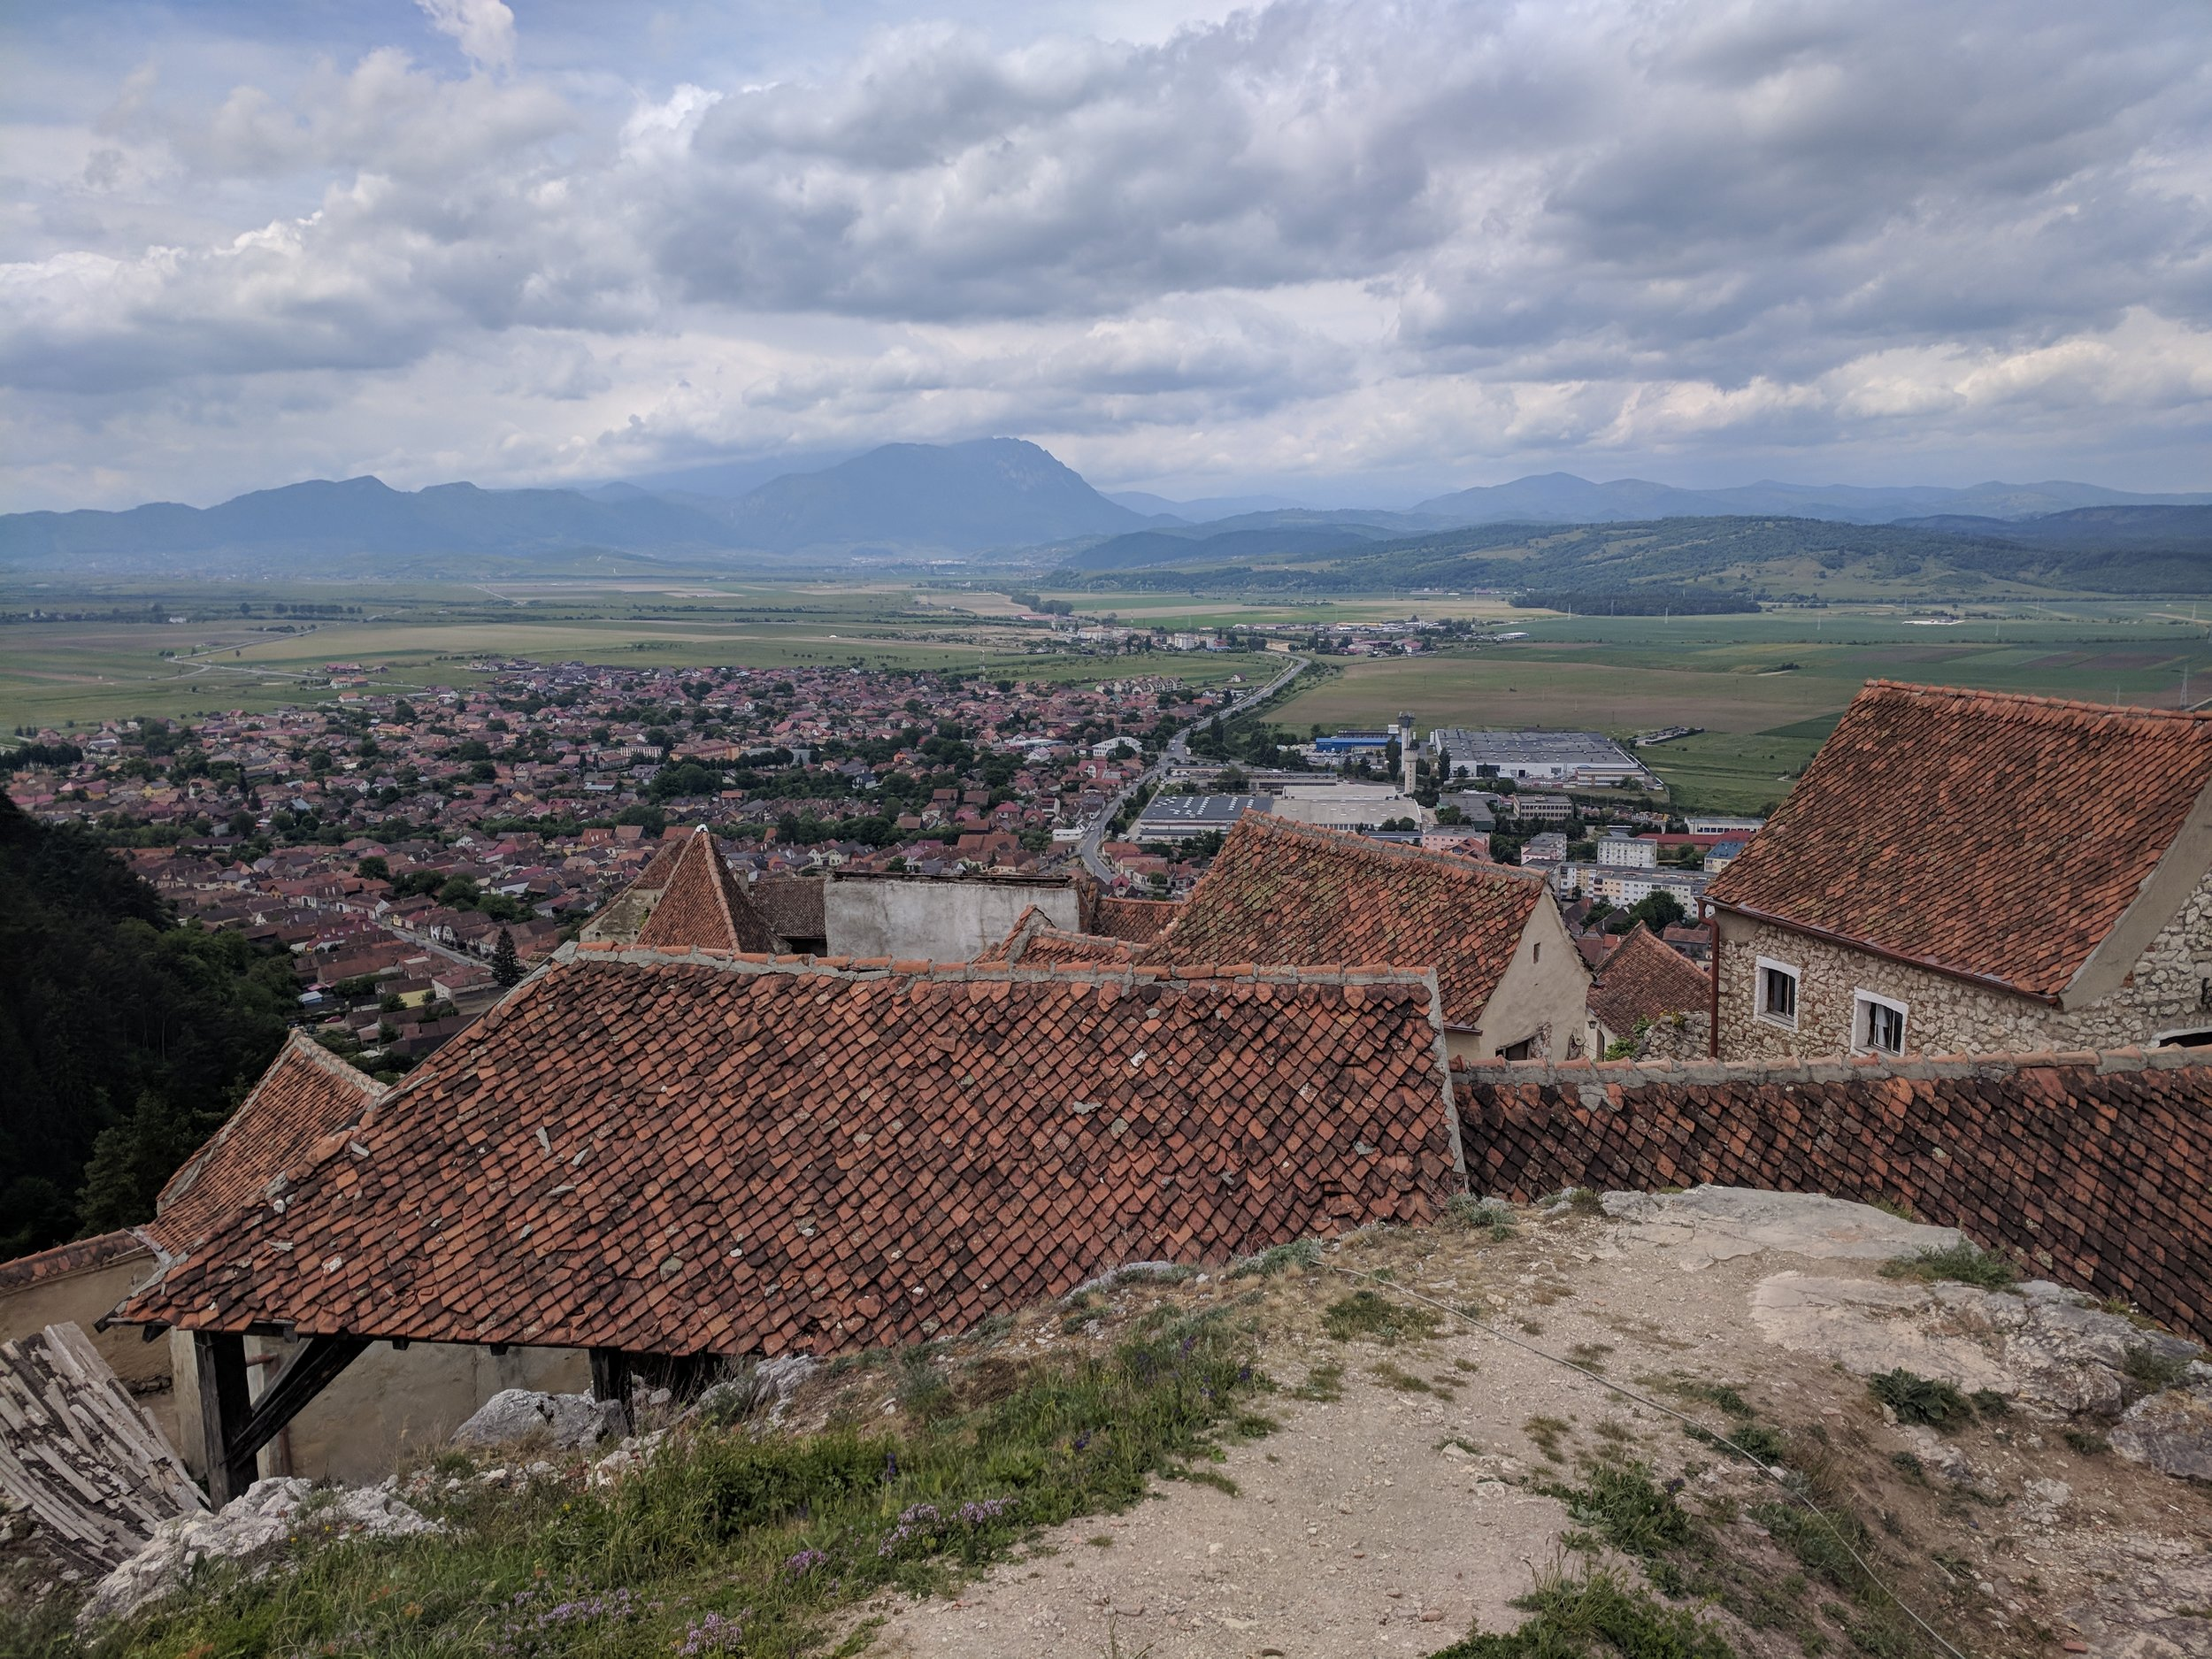 The view from the Rasnov Citadel